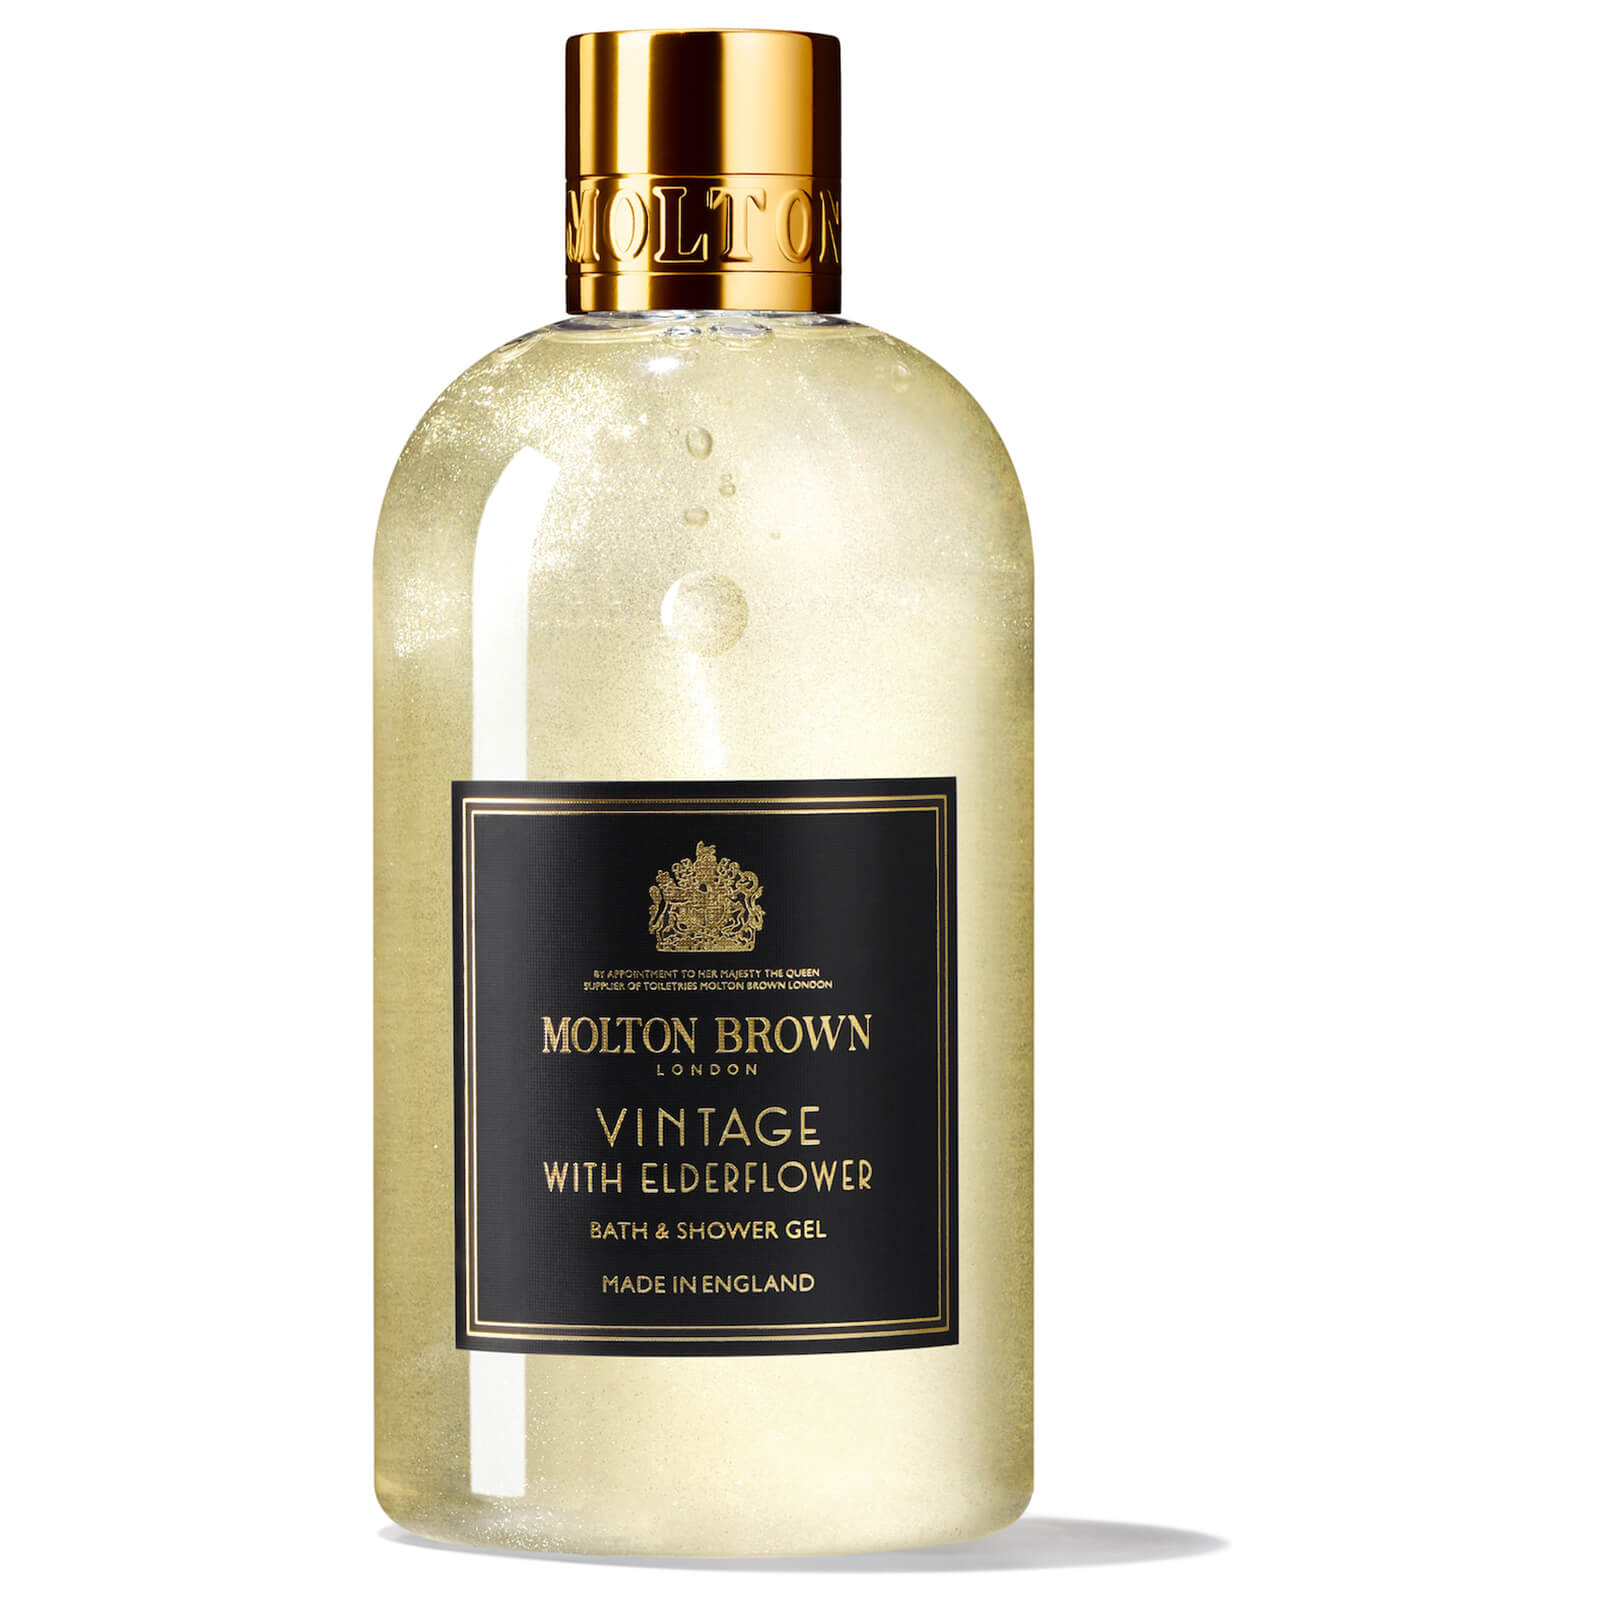 Molton Brown Vintage with Elderflower Bath and Shower Gel 300ml